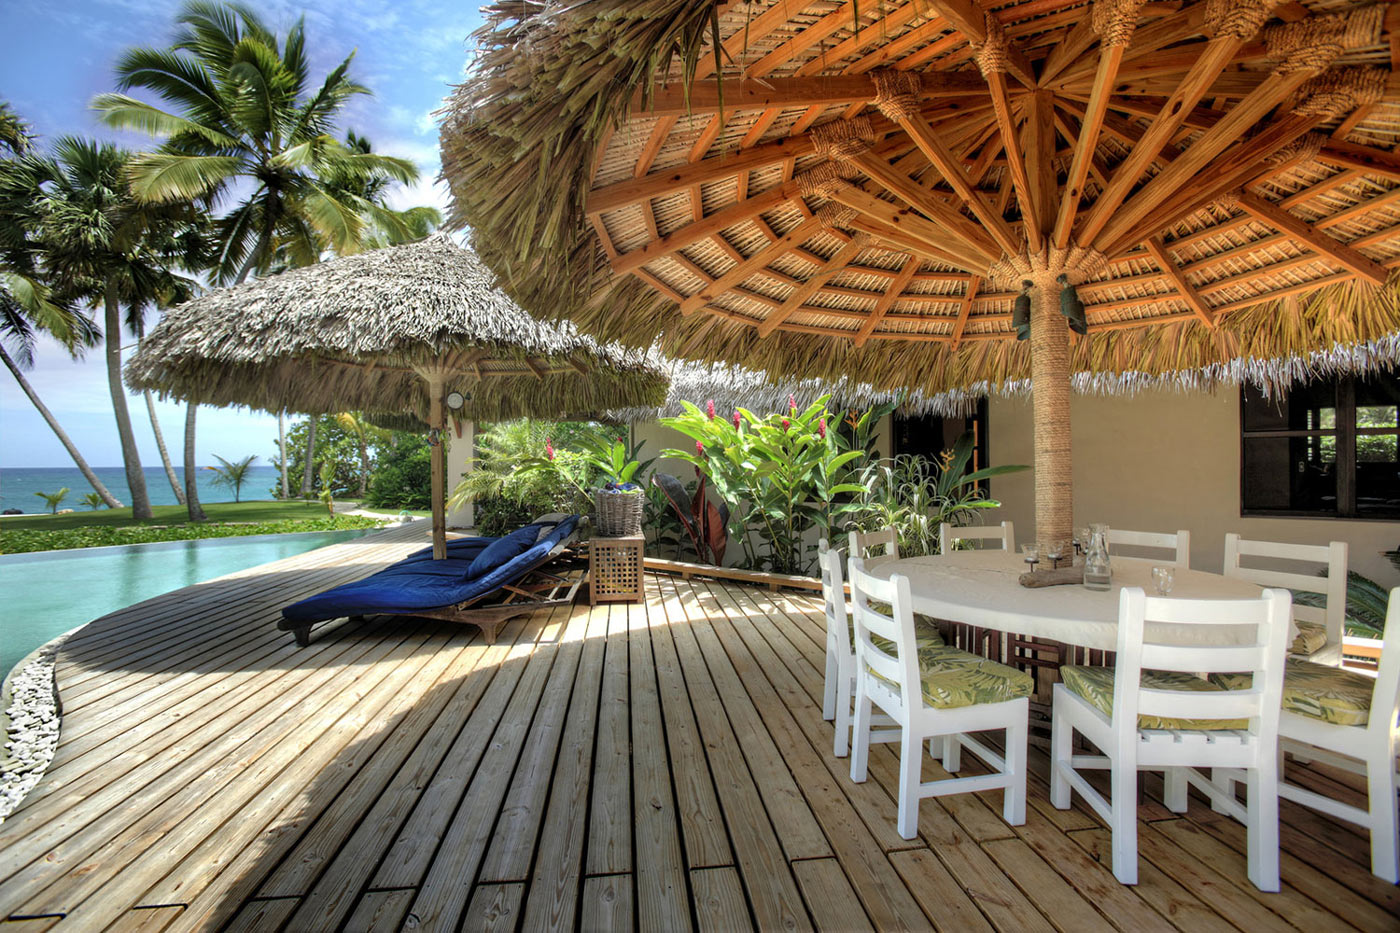 Wooden Terrace, Pool, Tiki Parasols